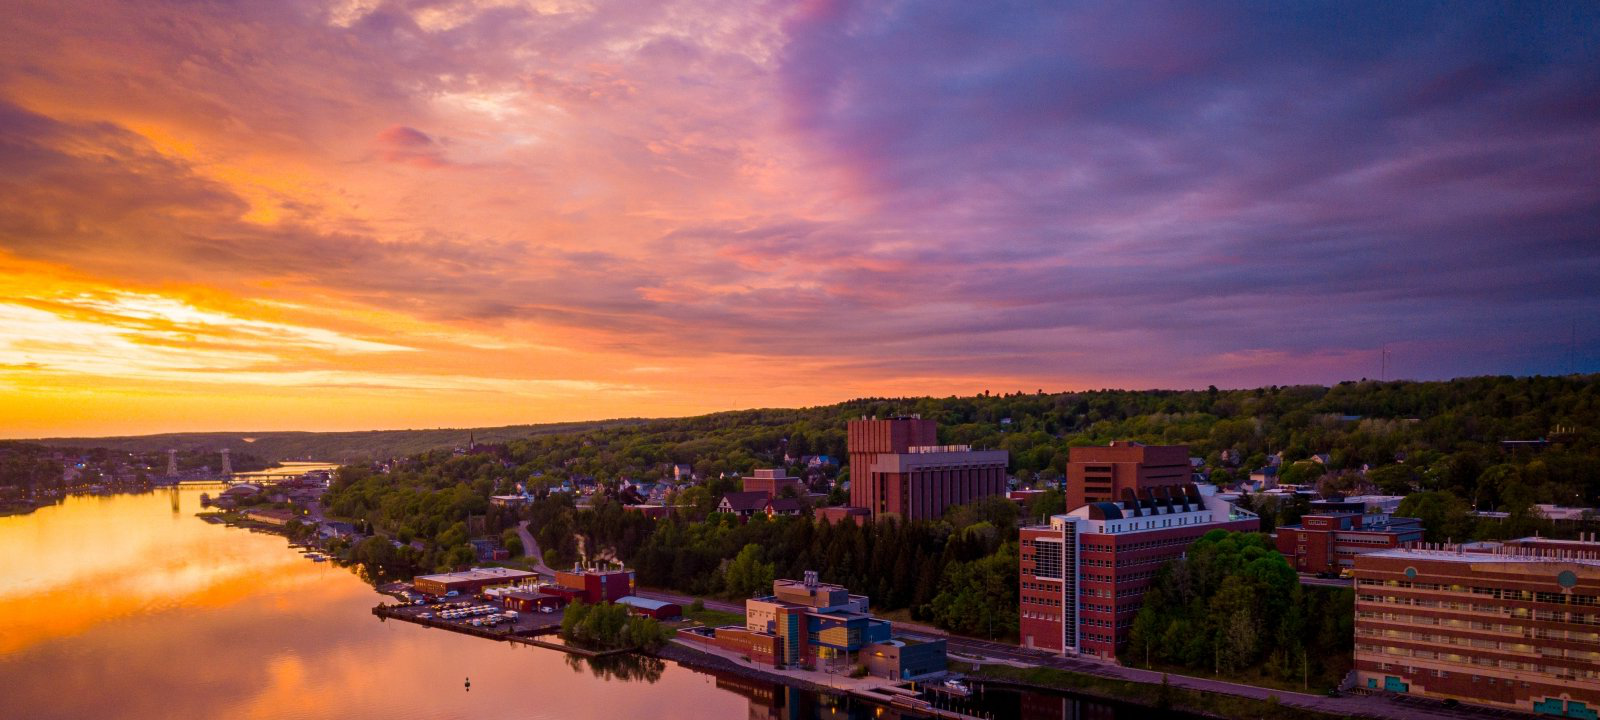 Michigan Tech's campus at sunset